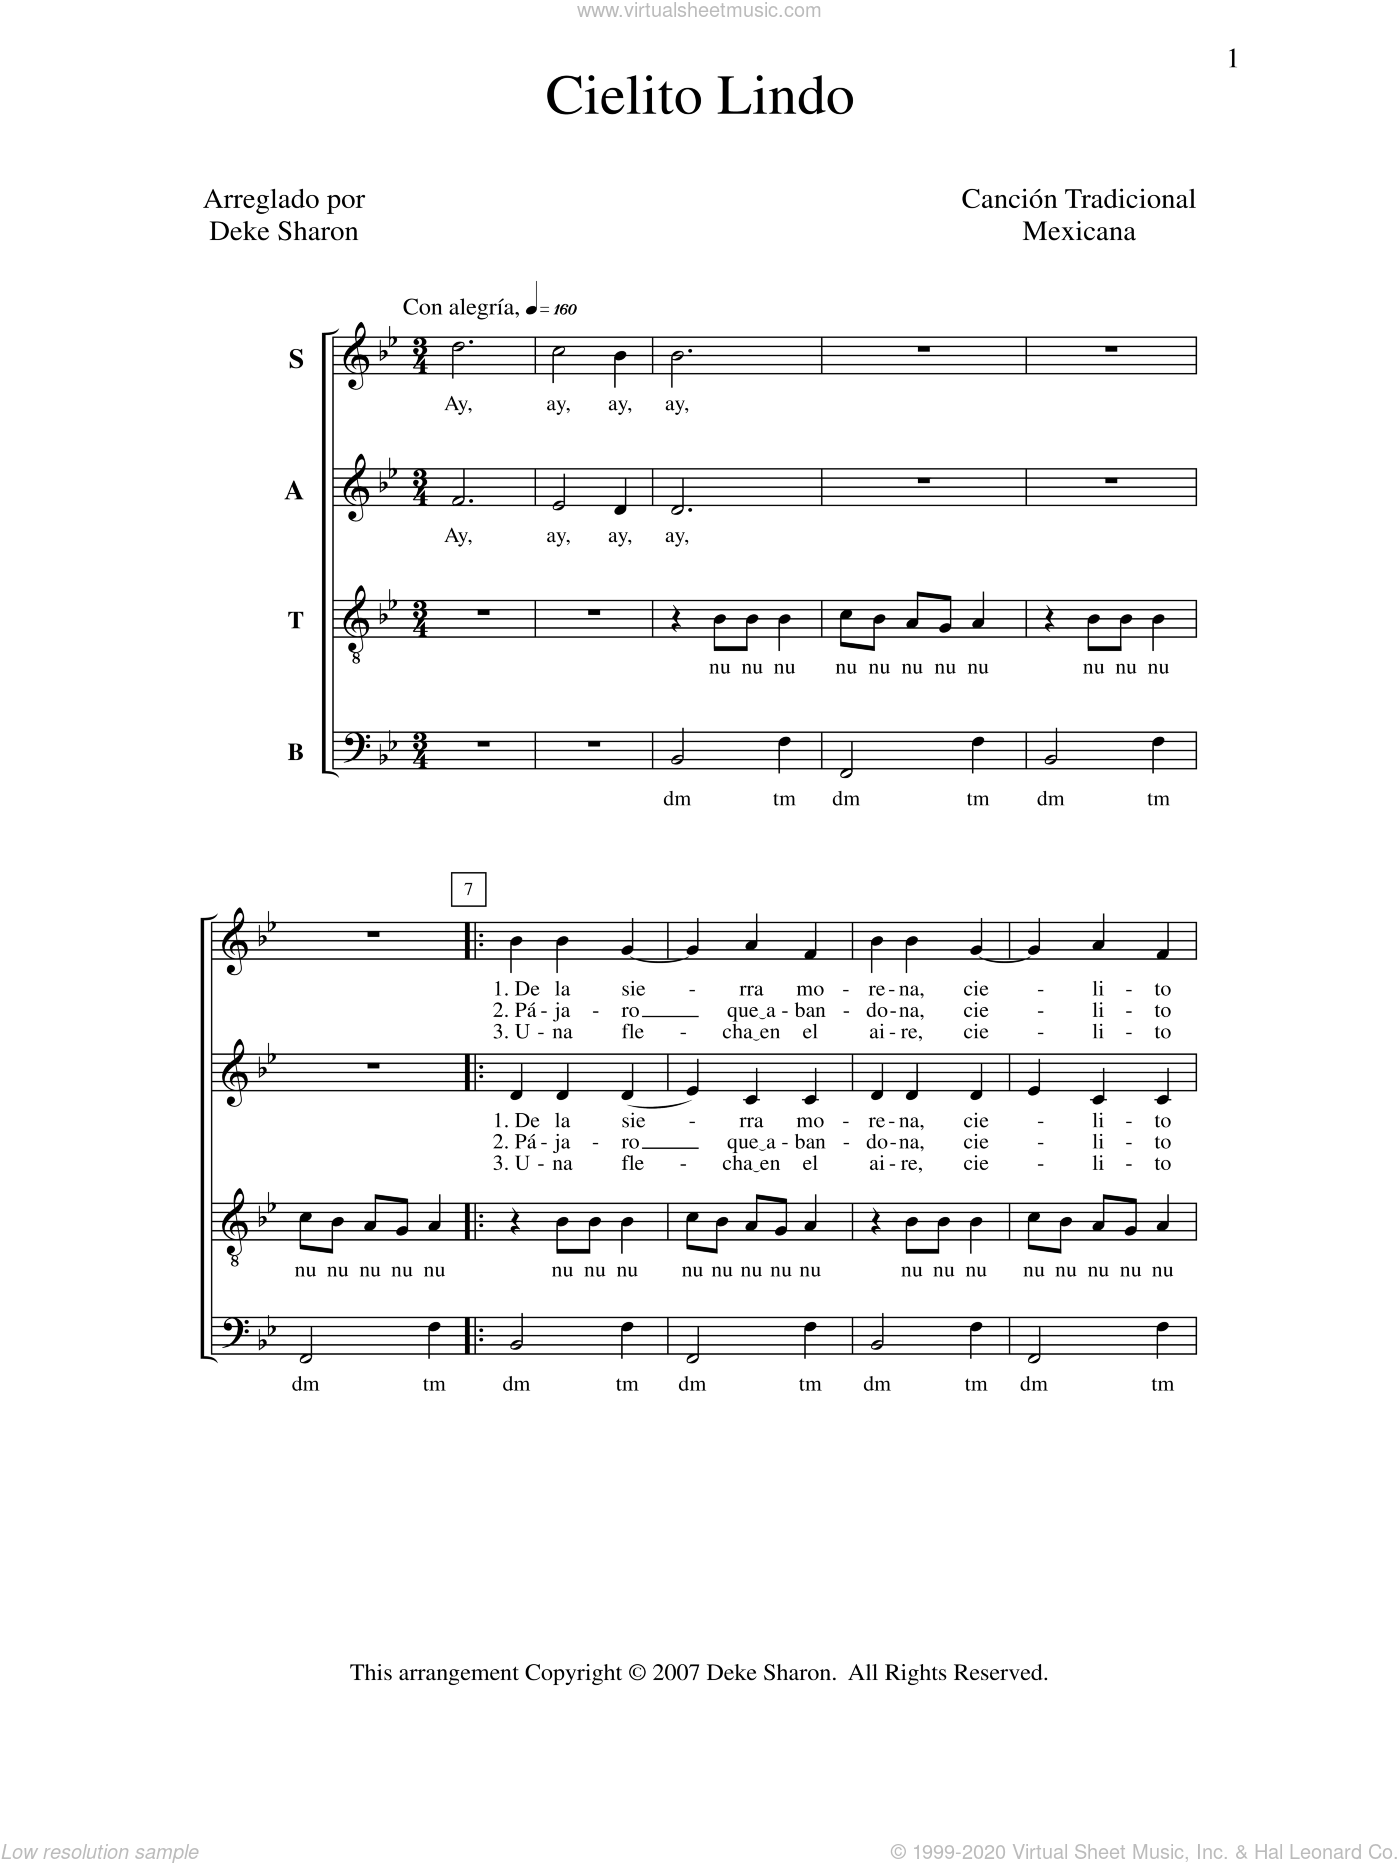 Cielito Lindo sheet music for choir by Deke Sharon, Anne Raugh and Miscellaneous, intermediate skill level